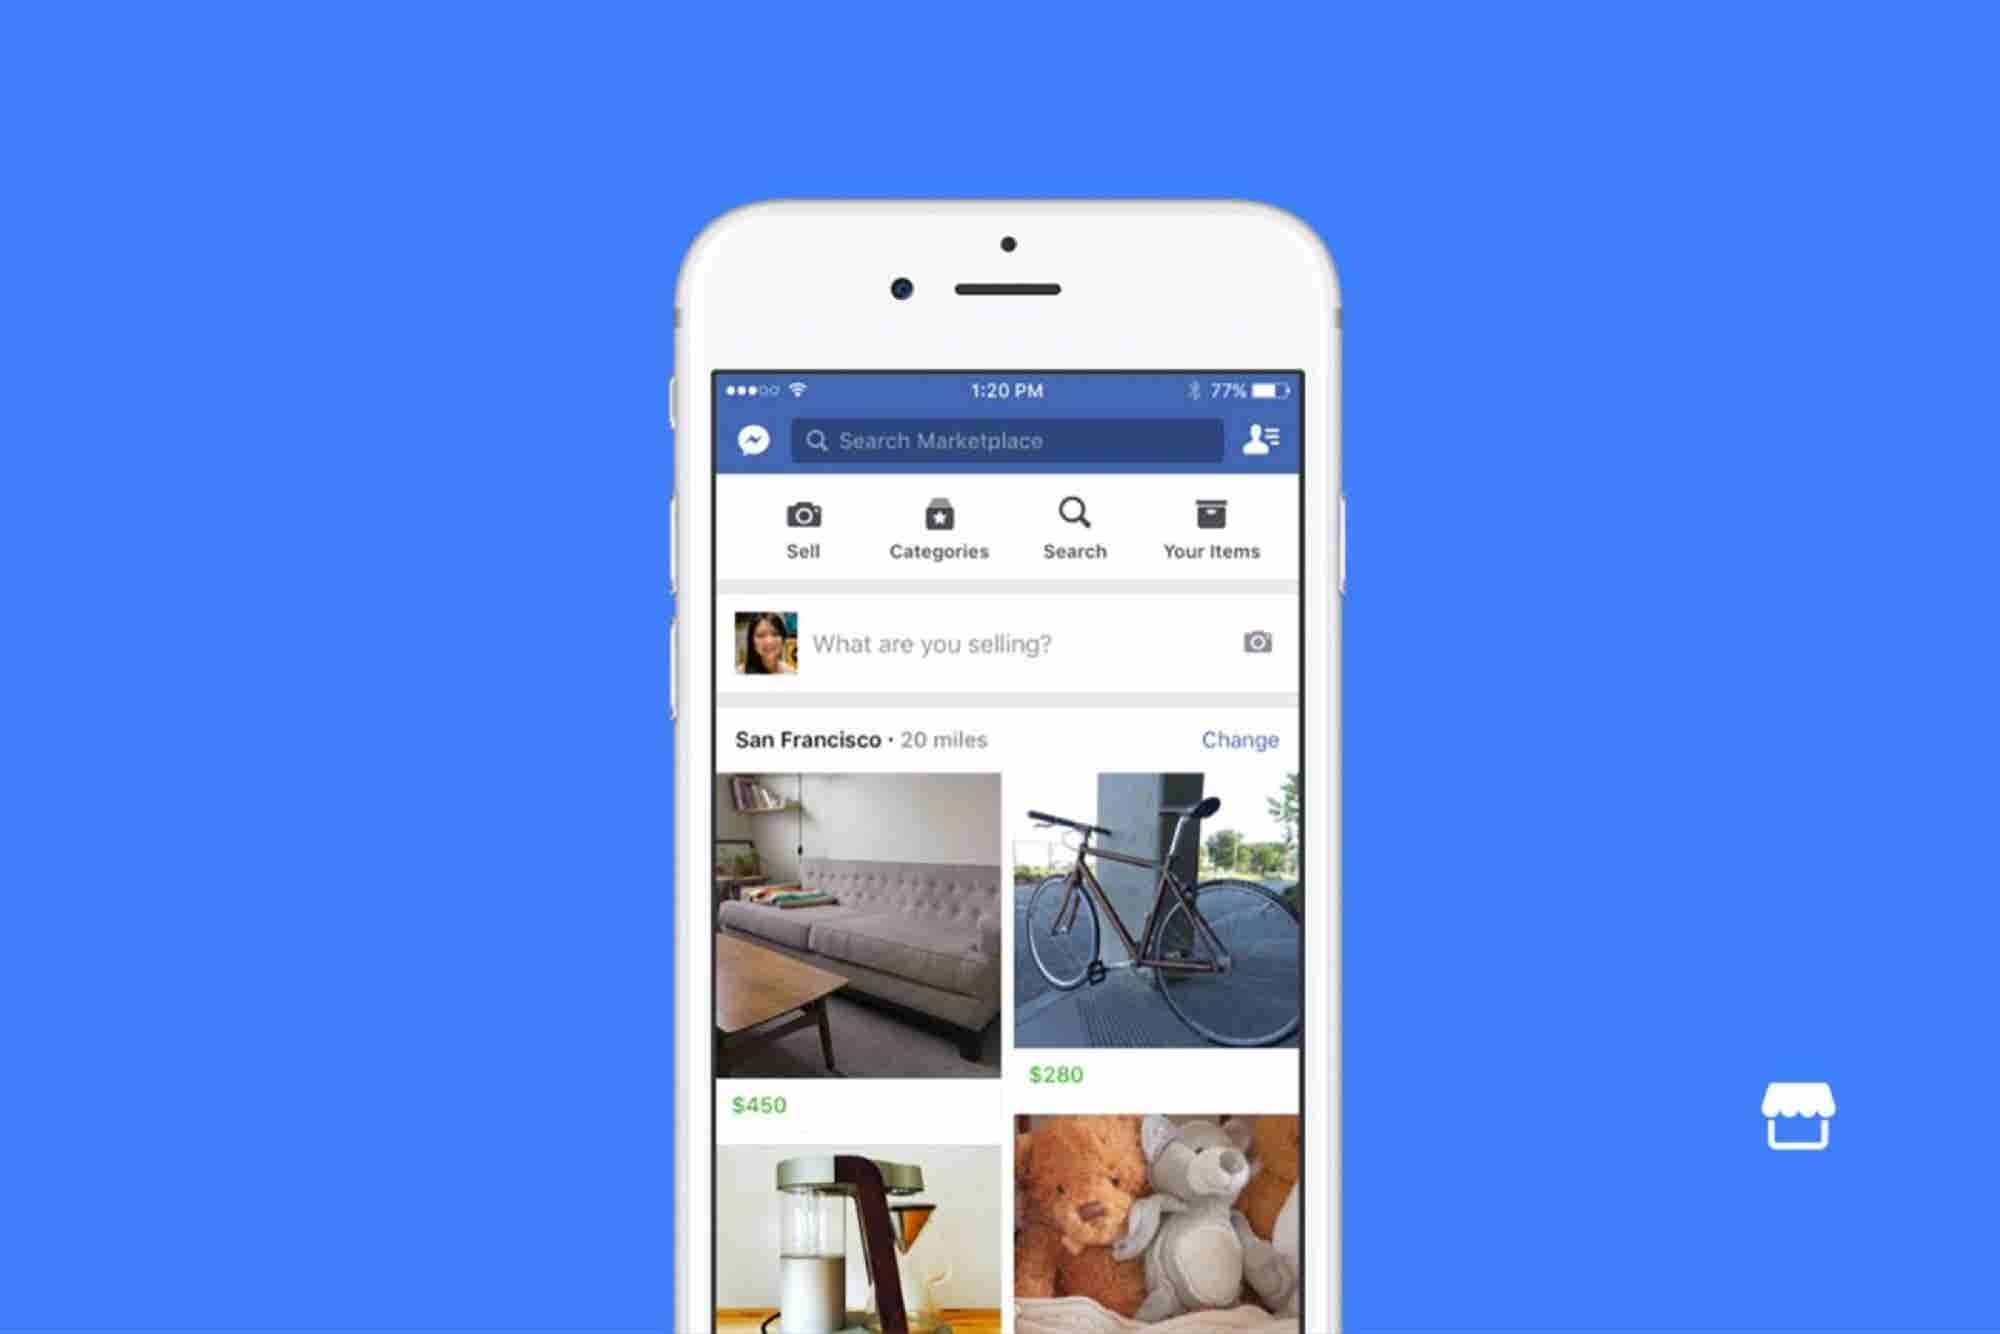 Facebook Opens Marketplace to Take on eBay and Craigslist